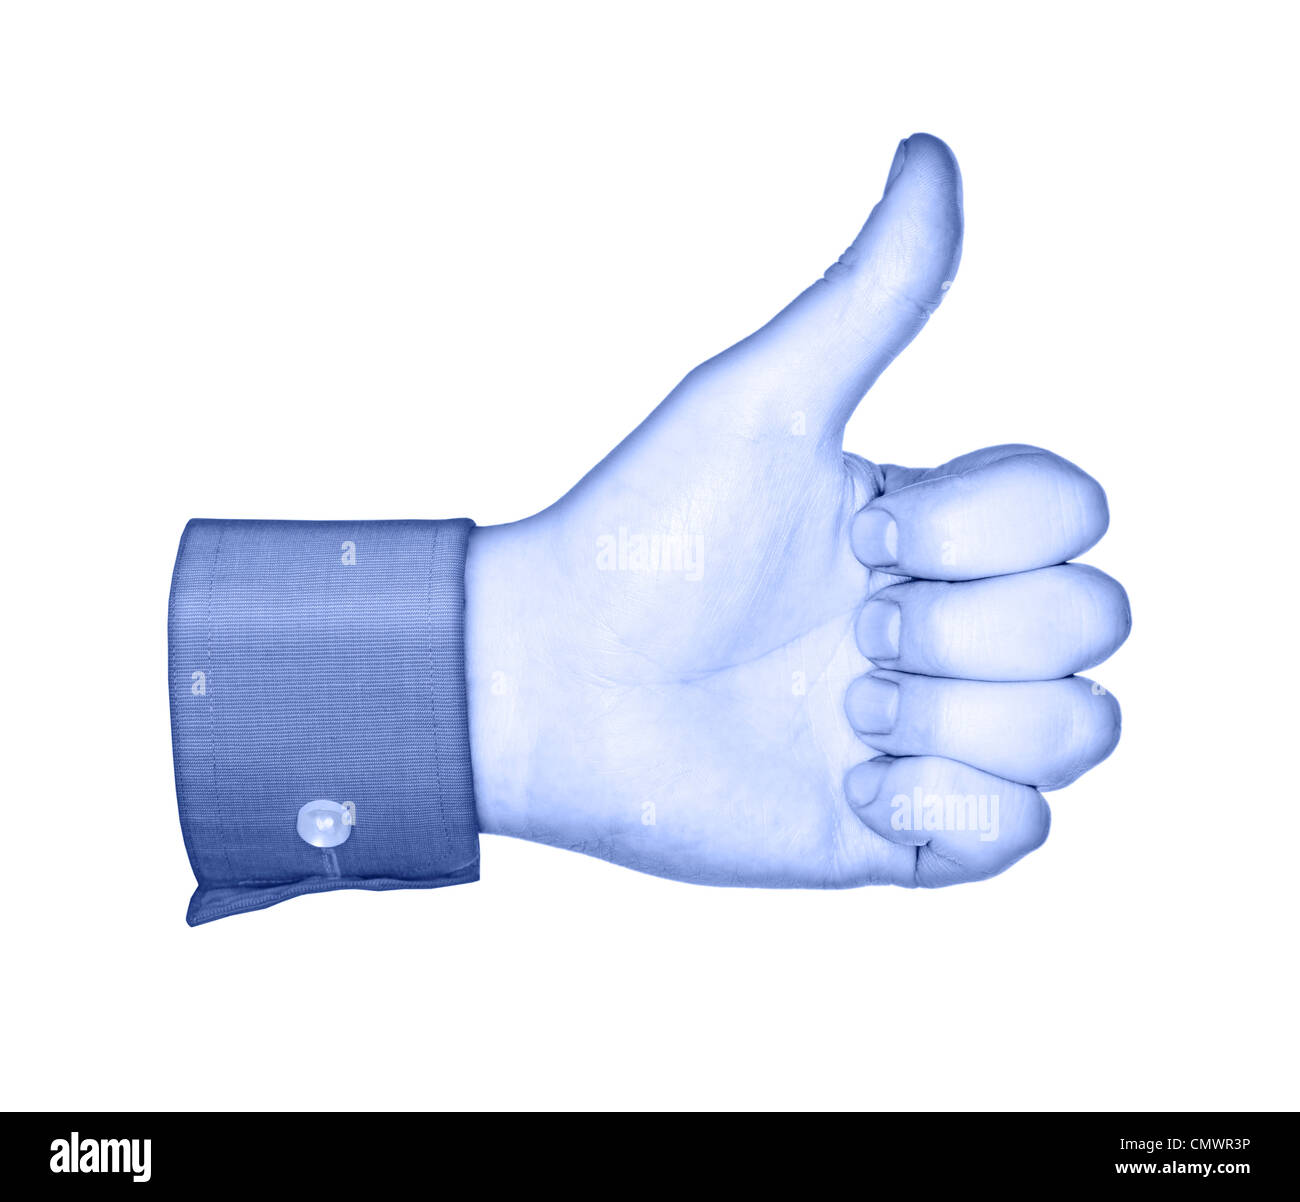 Conceptual image of a blue hand, similar to social media 'Like' buttons. - Stock Image